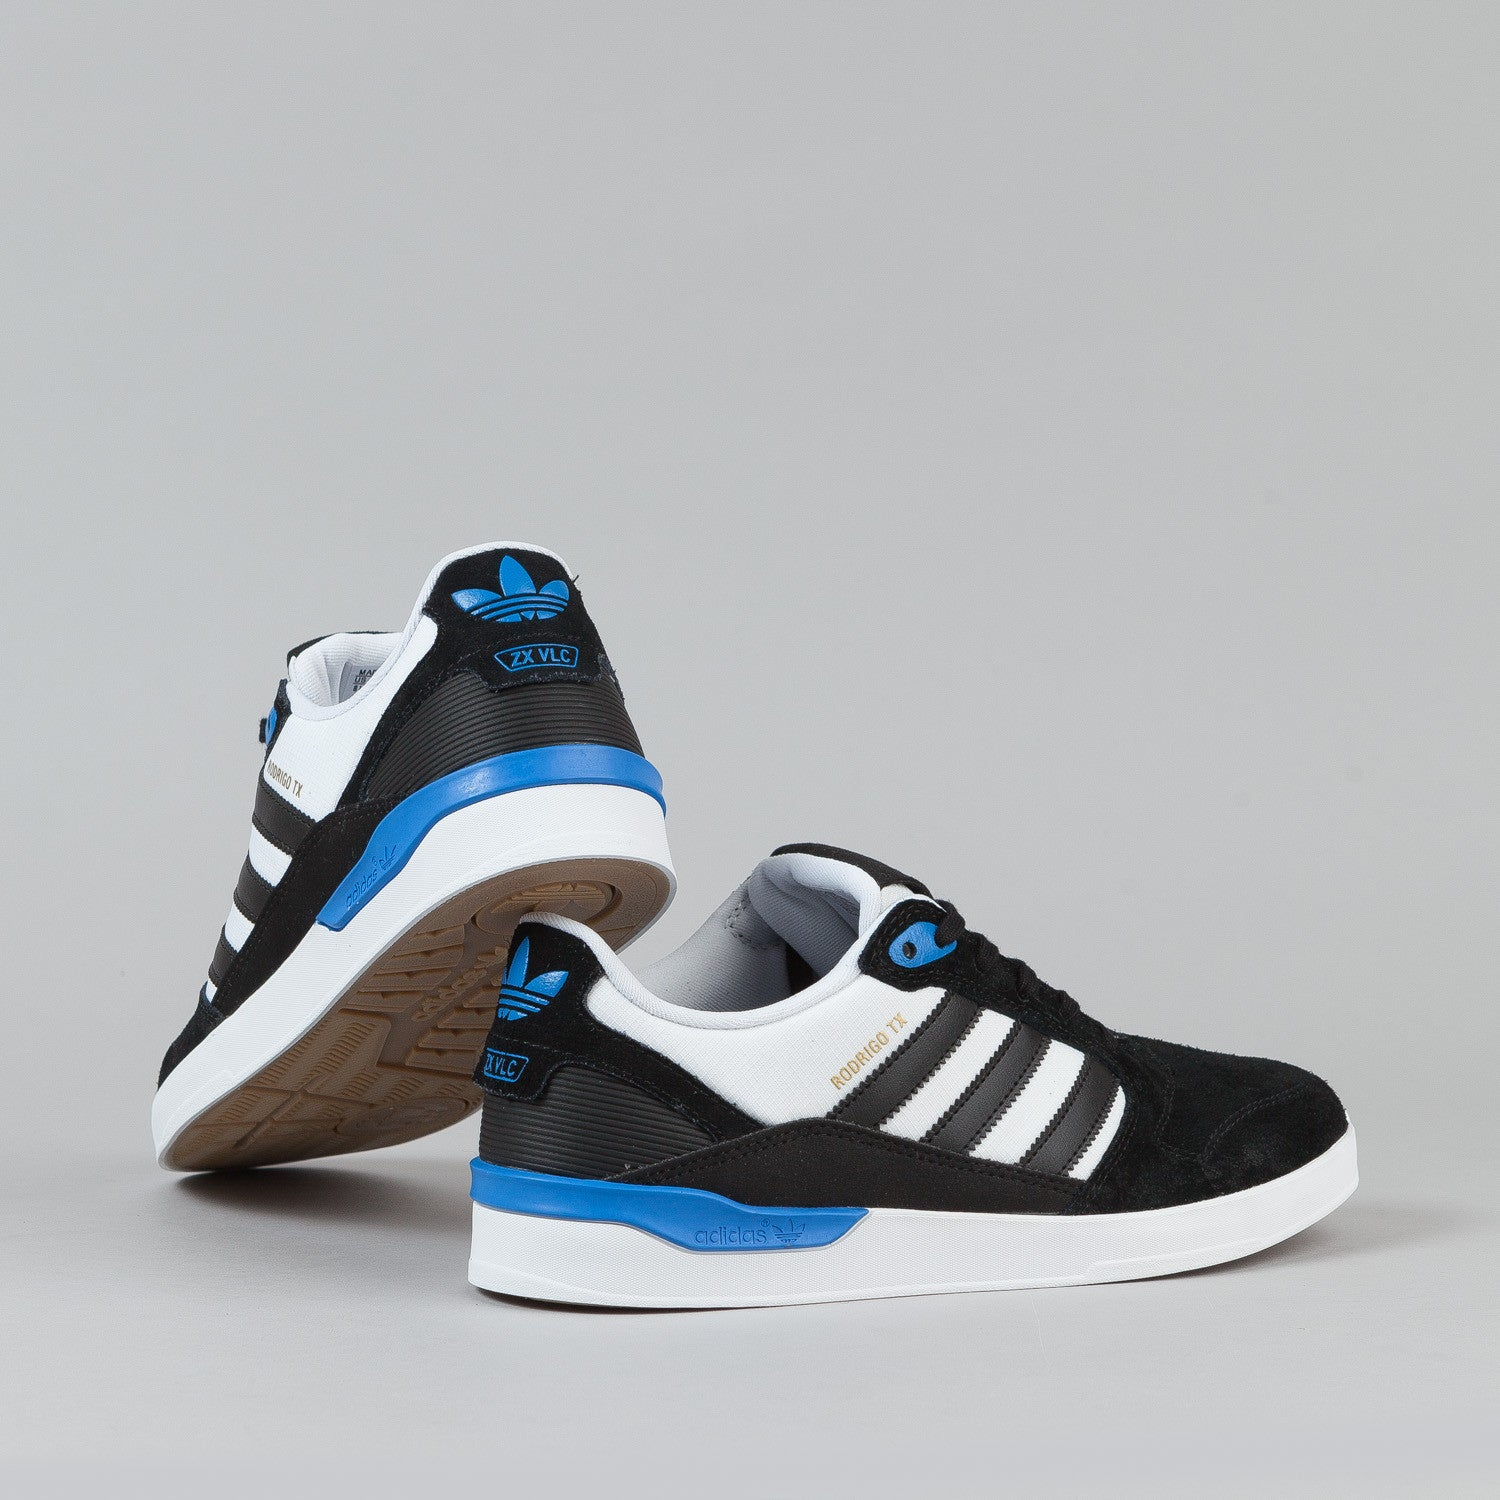 Adidas ZX Vulc Rodrigo TX Shoes - Core Black / White / Bluebird